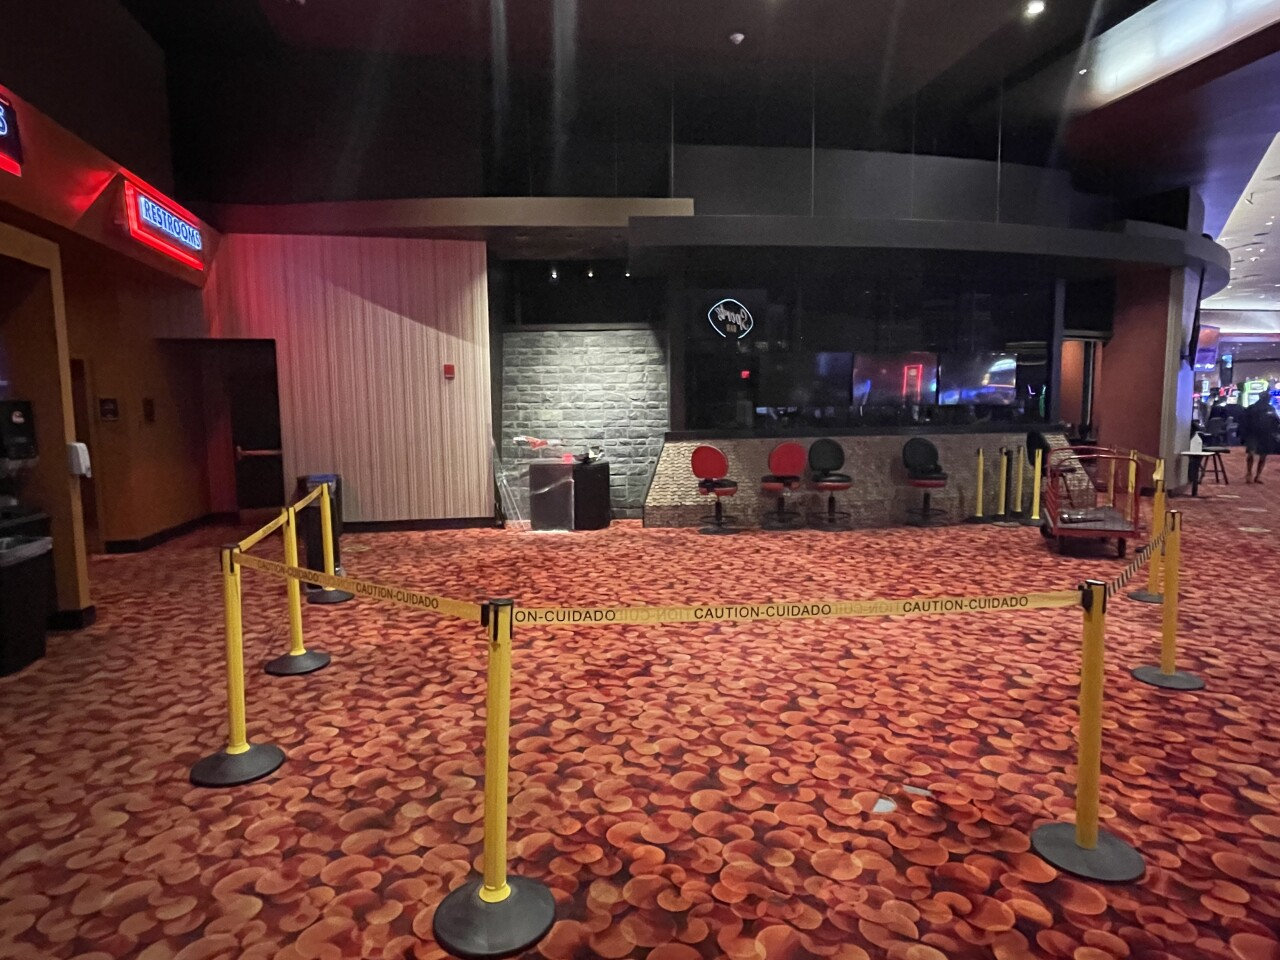 Temporary location to house initial sports wagering is towards the back of the gaming floor in front of the sports bar at Oneida Casino's Main-Airport location